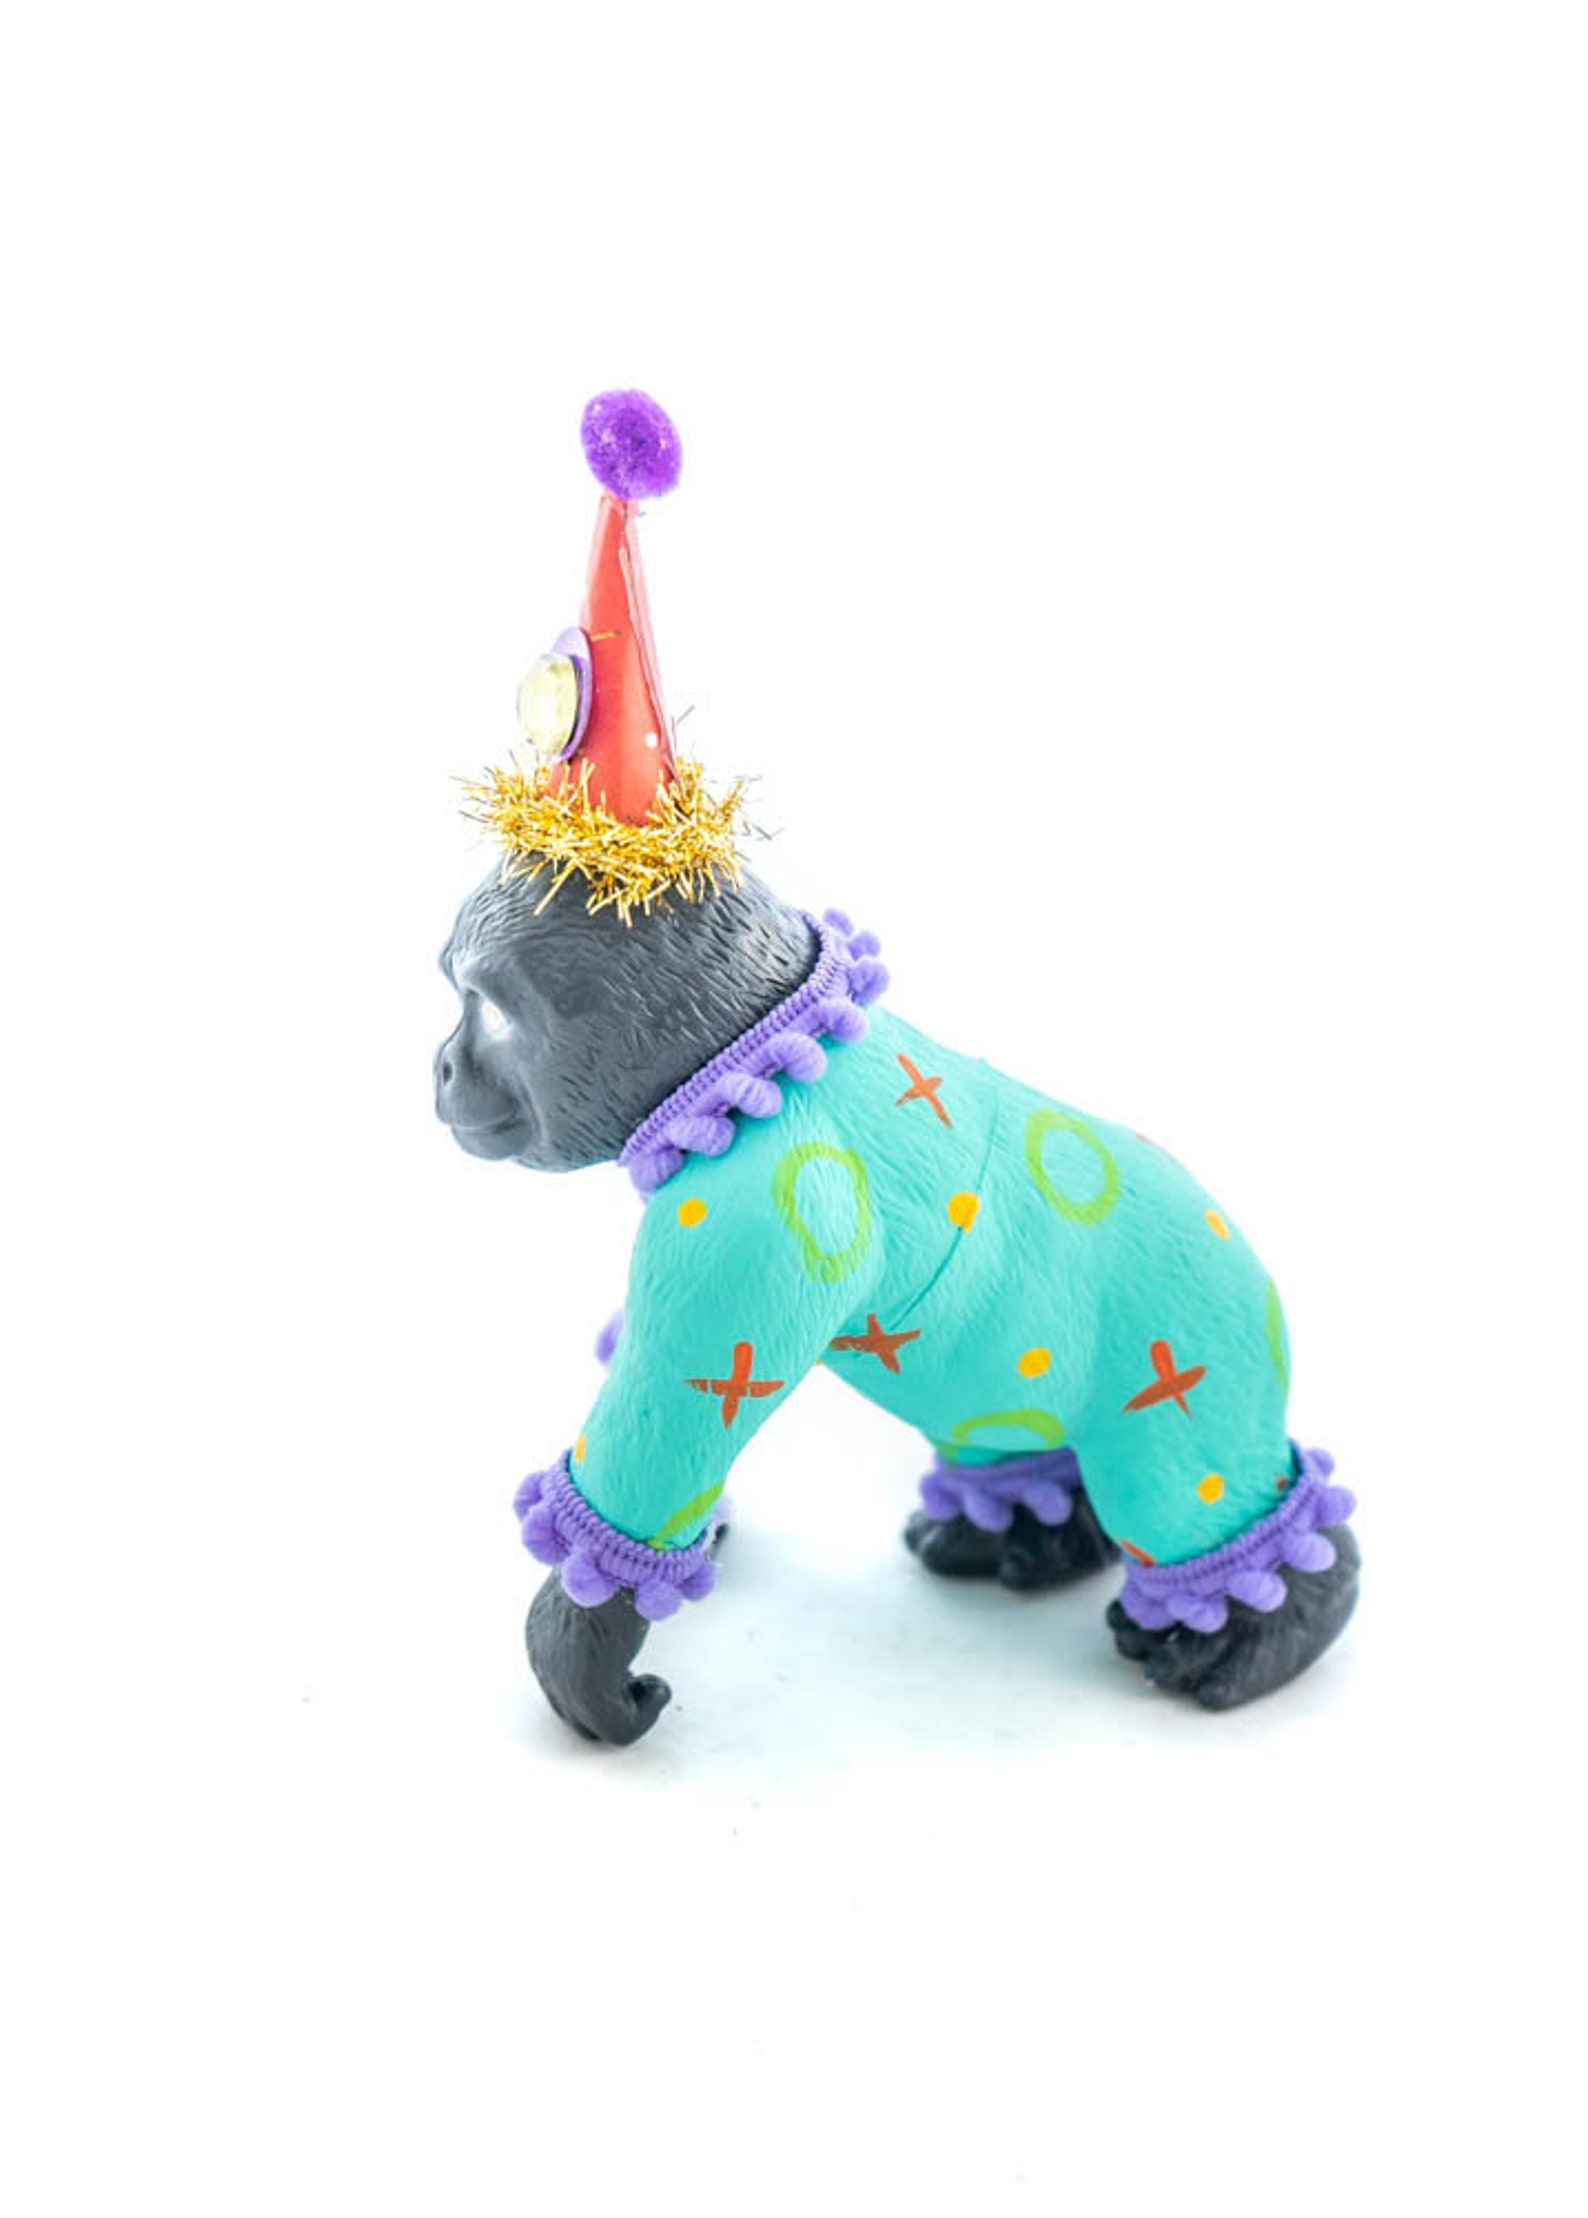 Circus Gorilla Cake Toppers by Painted Parade